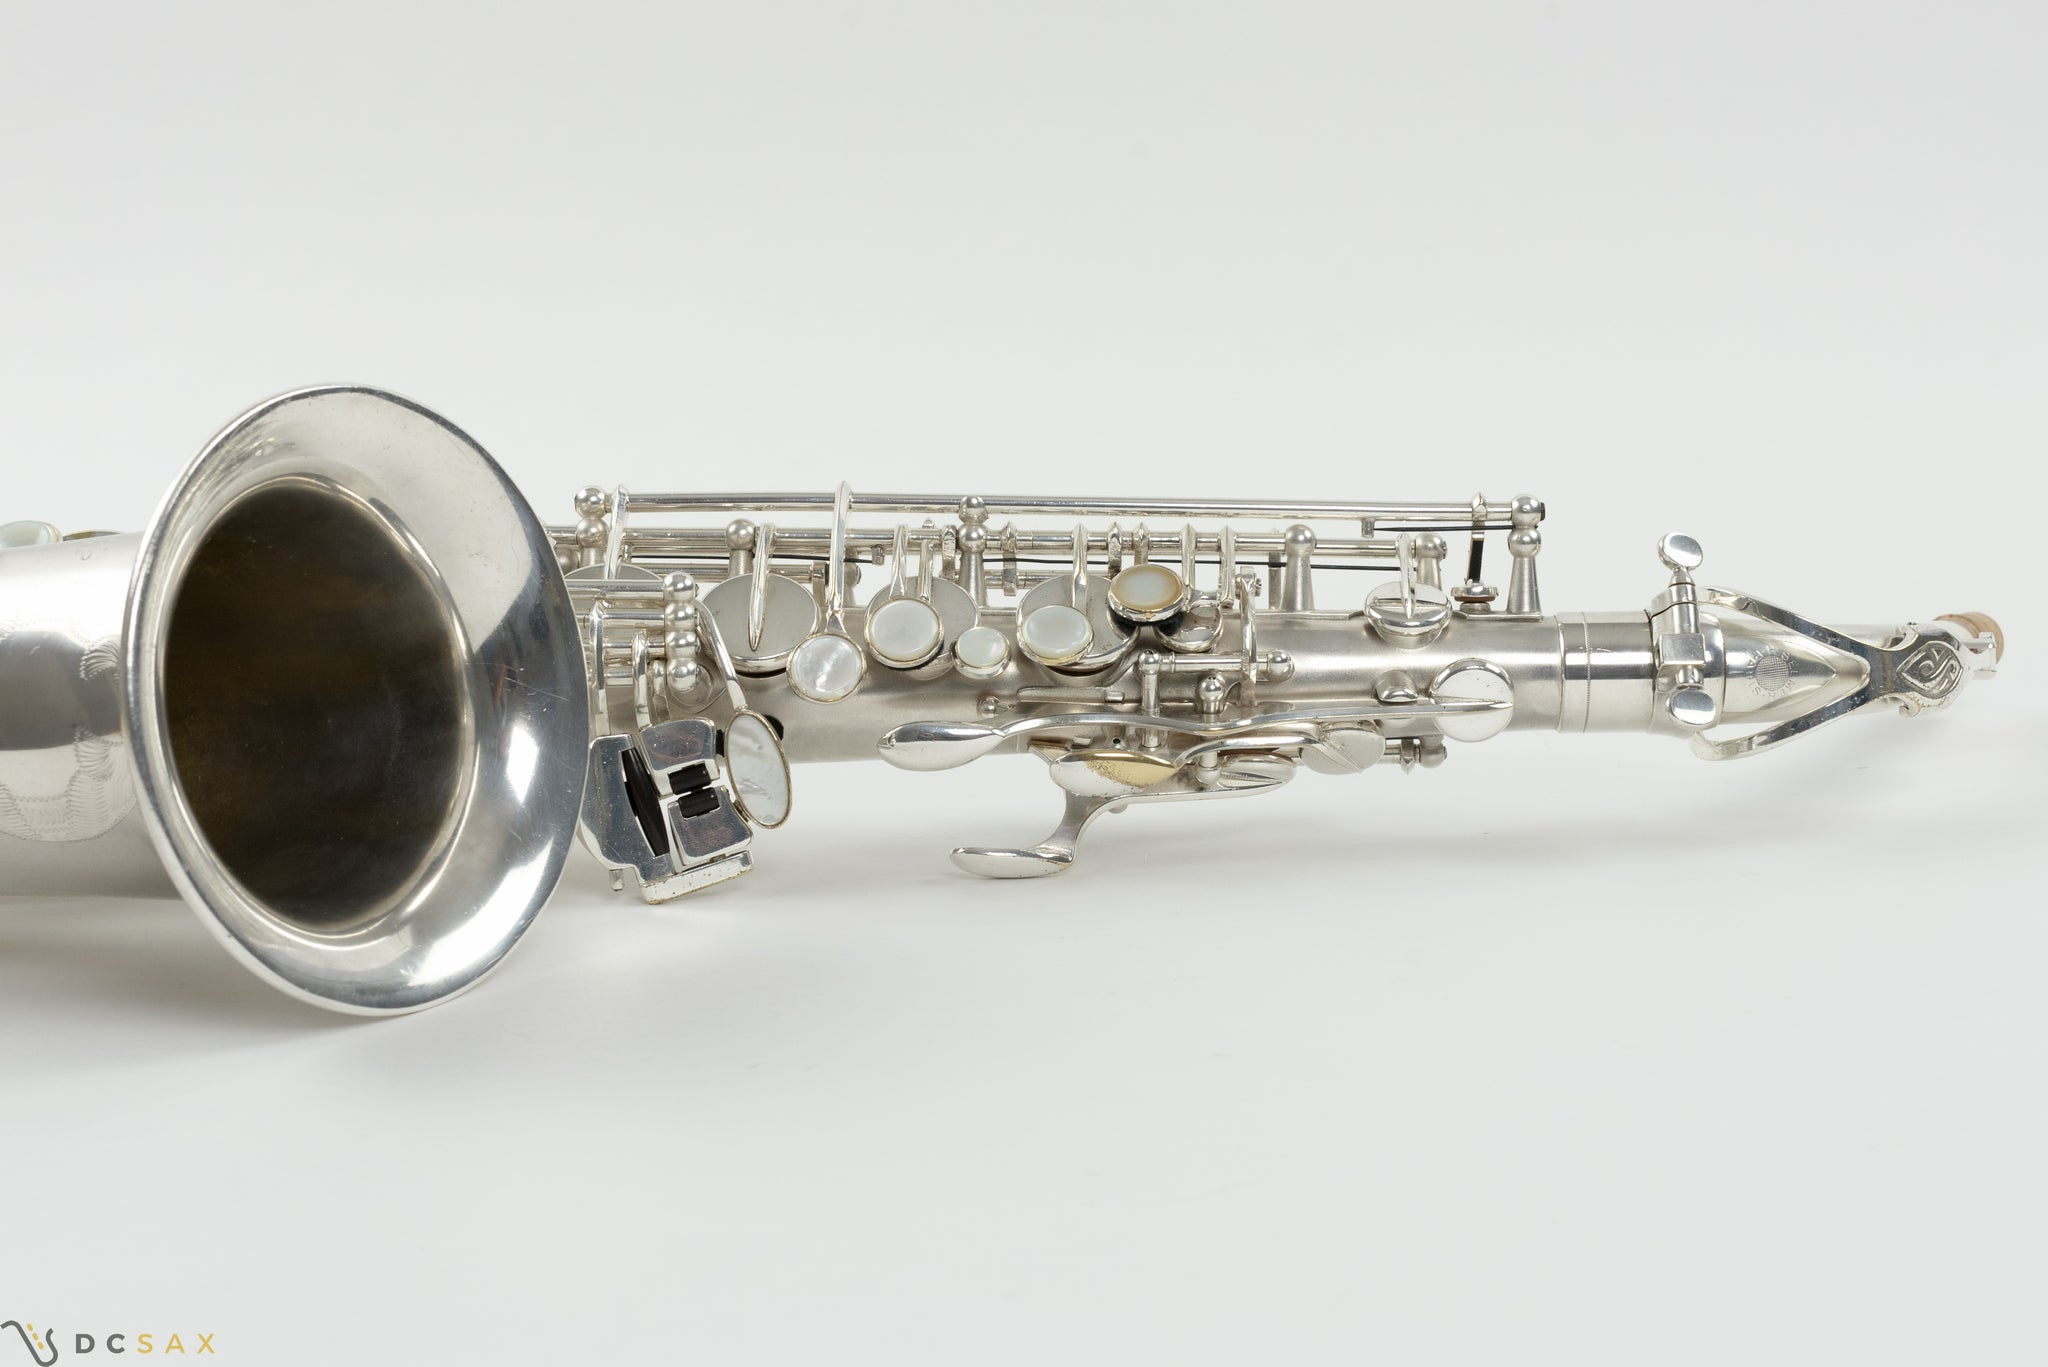 83,xxx Selmer Mark VI Alto Saxophone, 99% Original Satin Silver Plate, Medium Bow, Overhaul, WOW